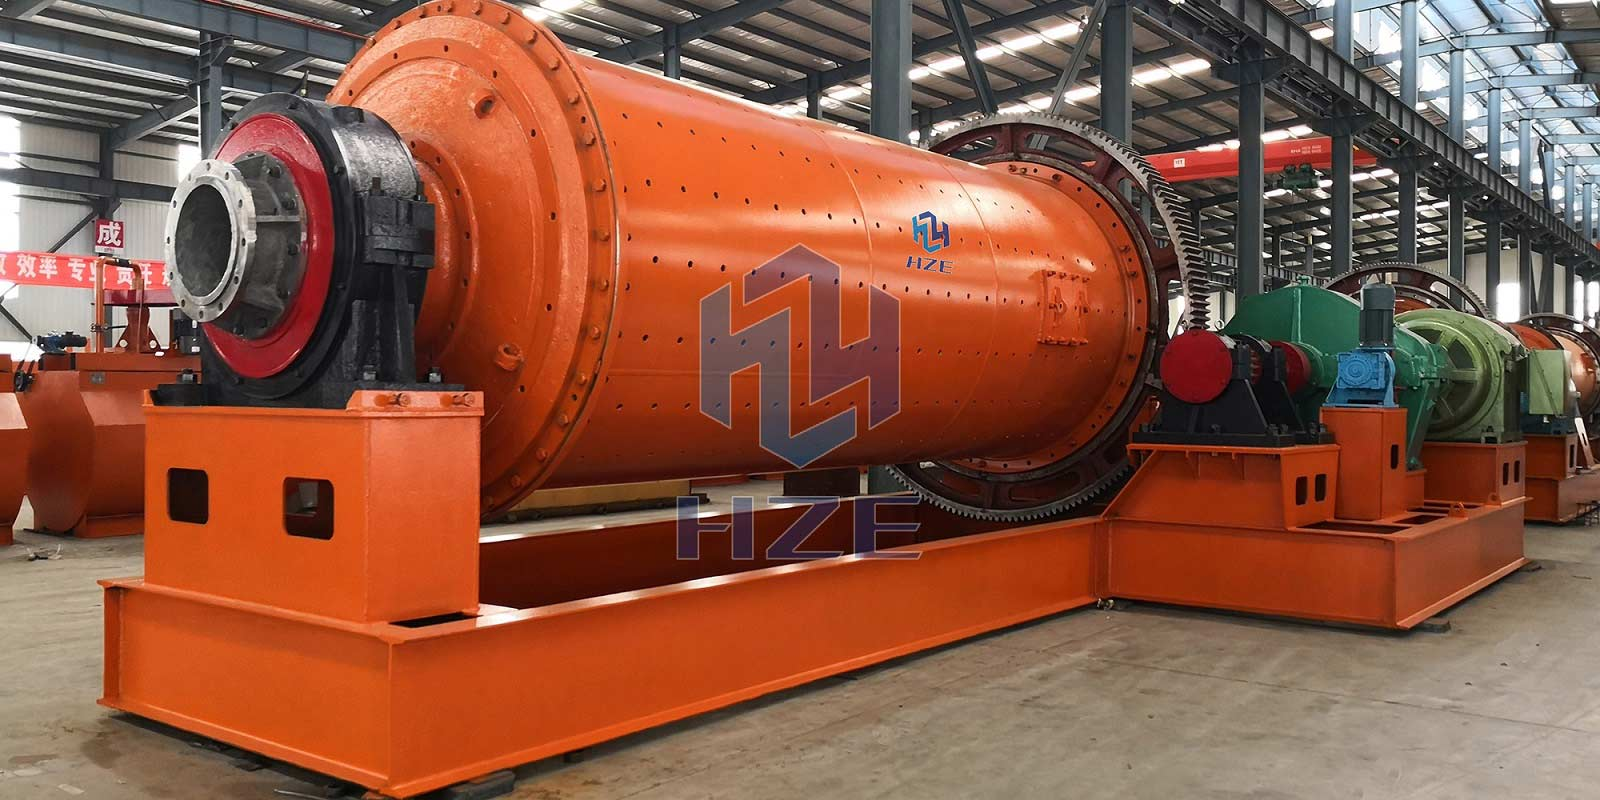 Equipment and Facilities Manufacture